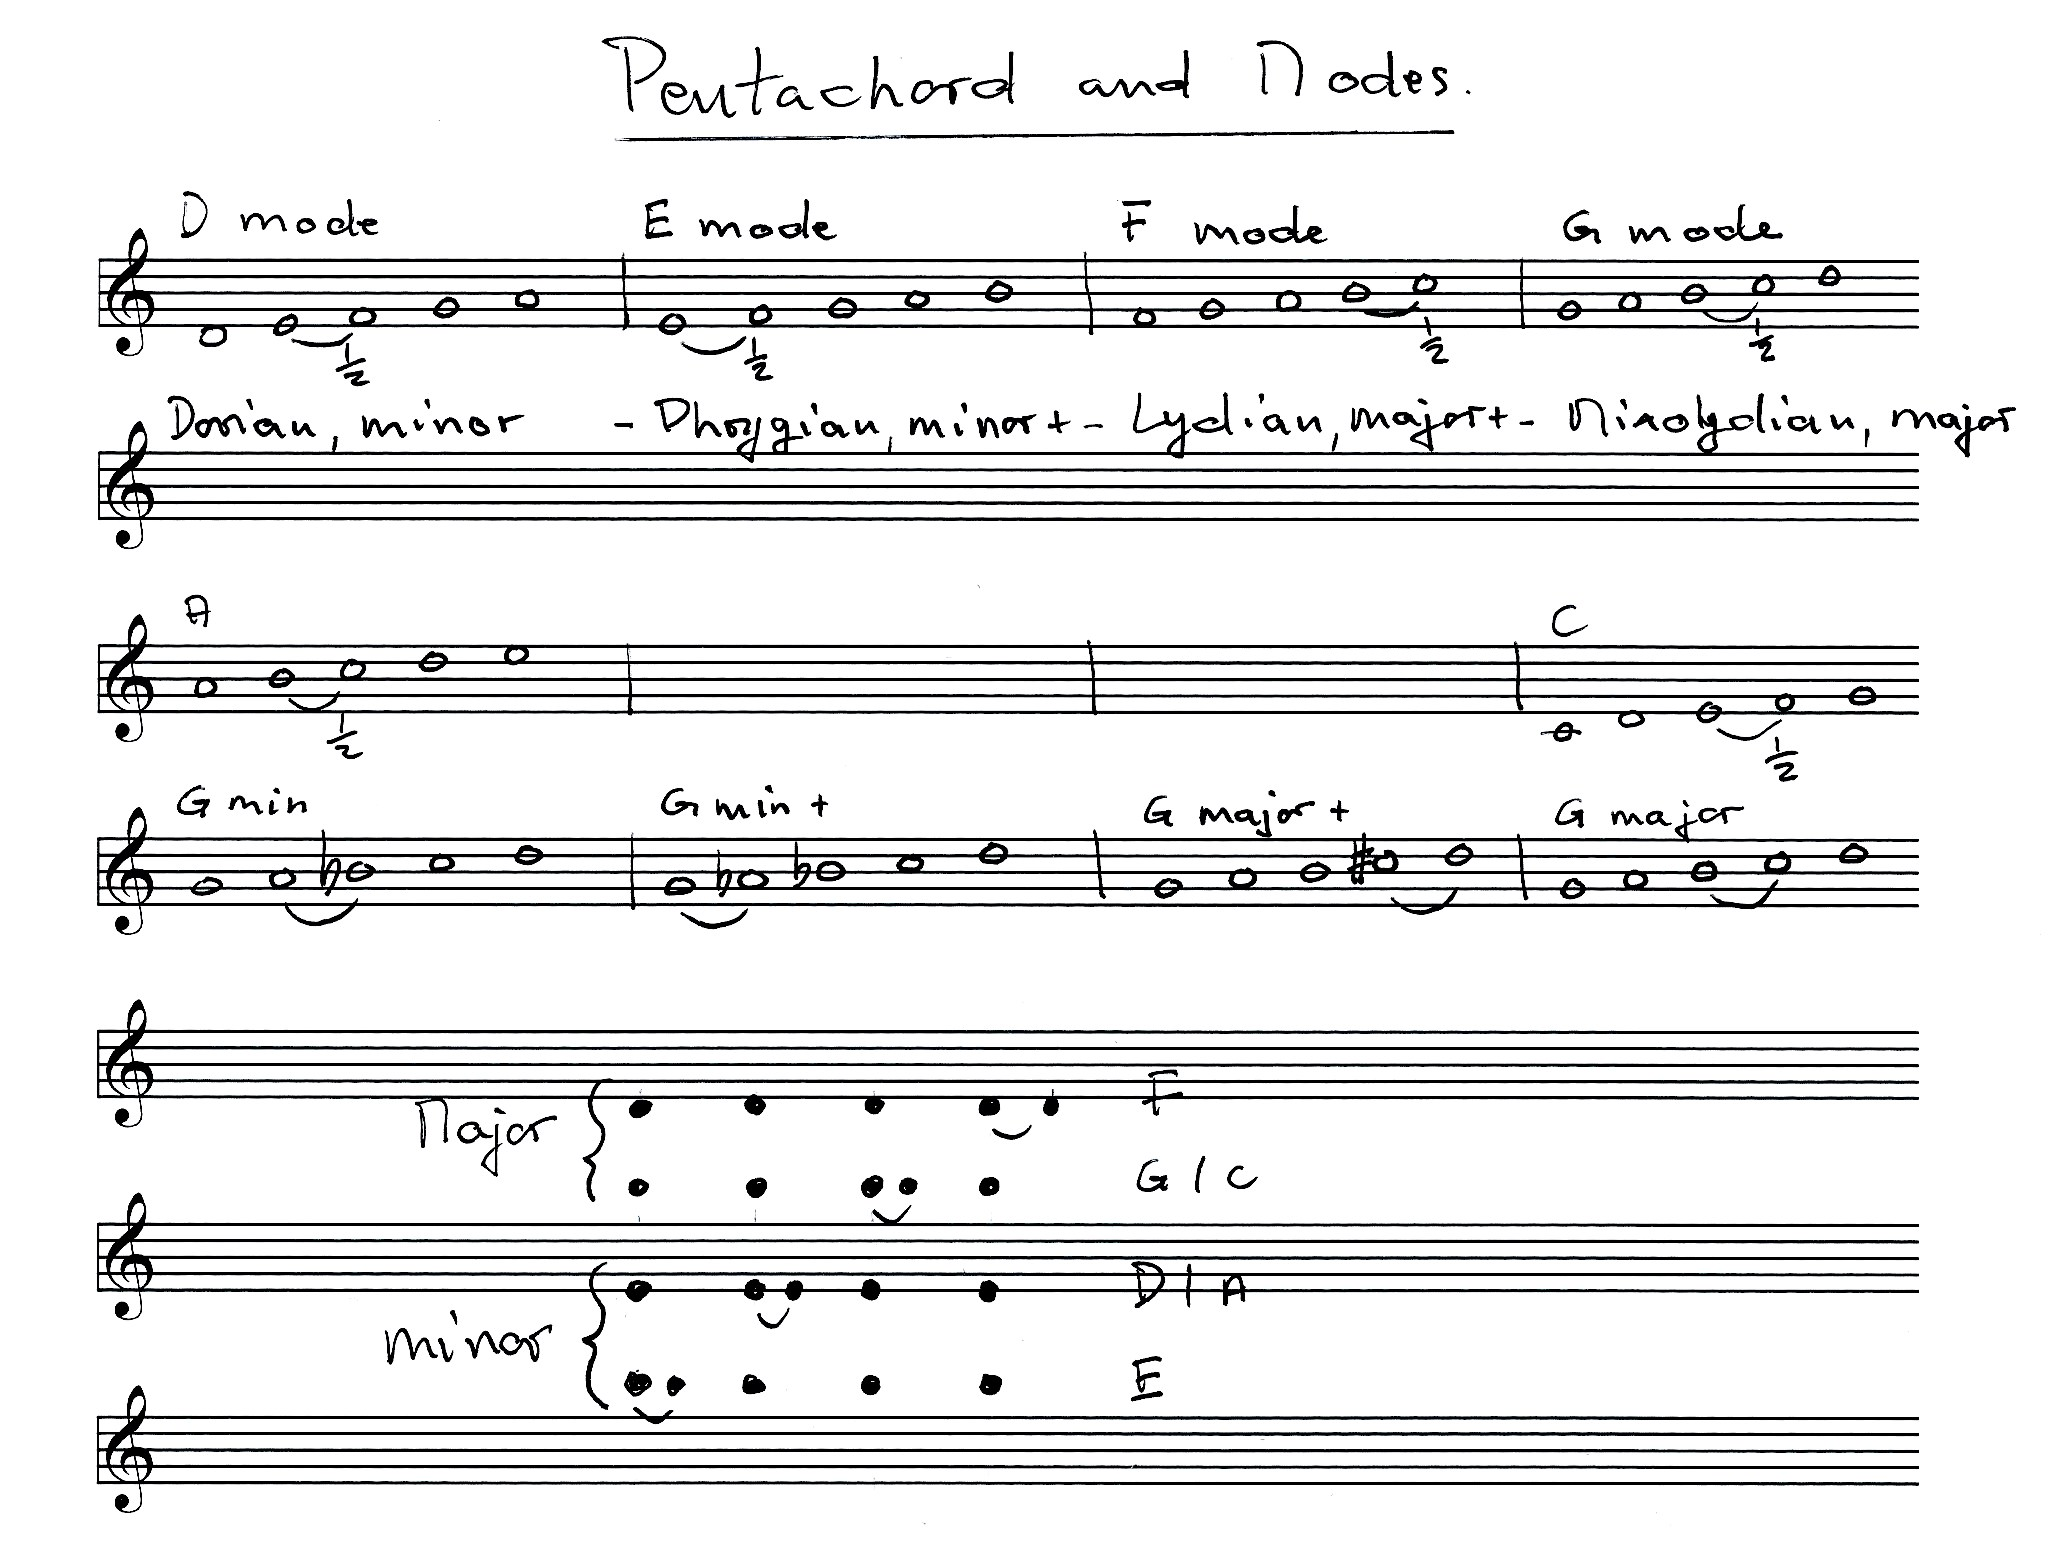 pentachords and music modes